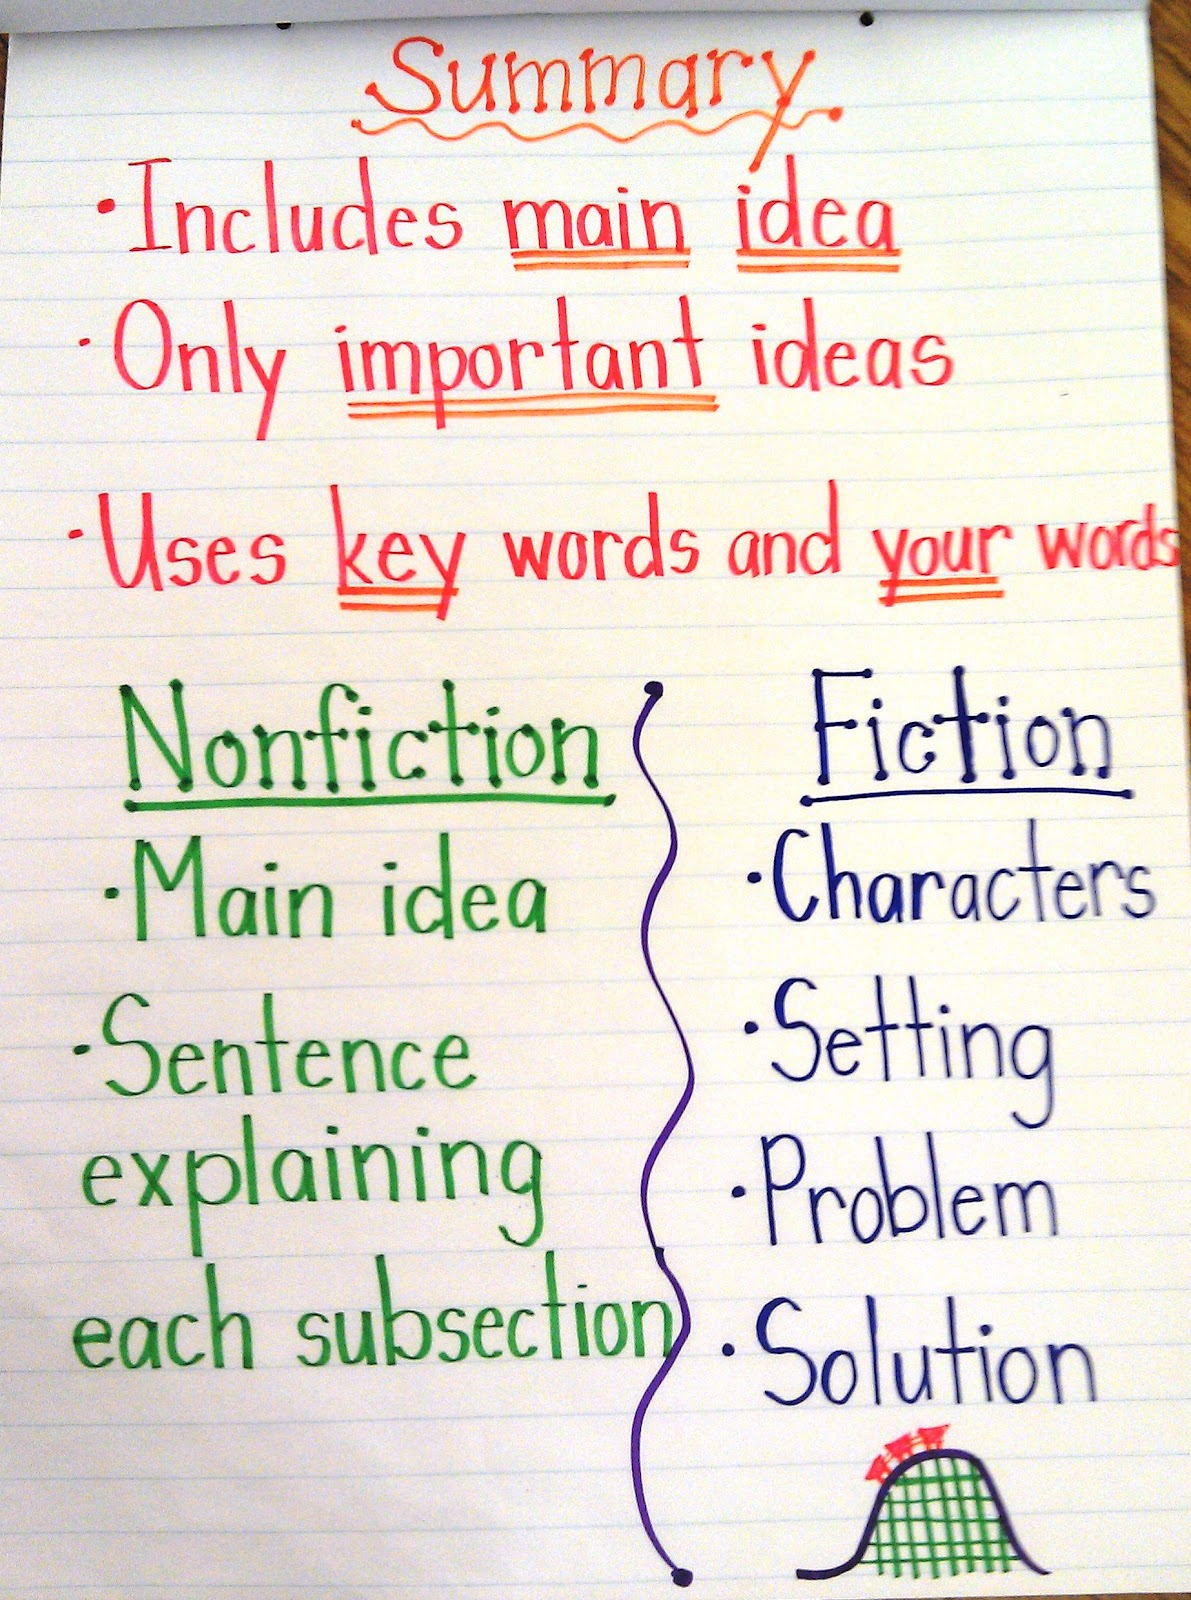 How to Write a Narrative Essay: the Complete Guide from Introduction to Conclusion